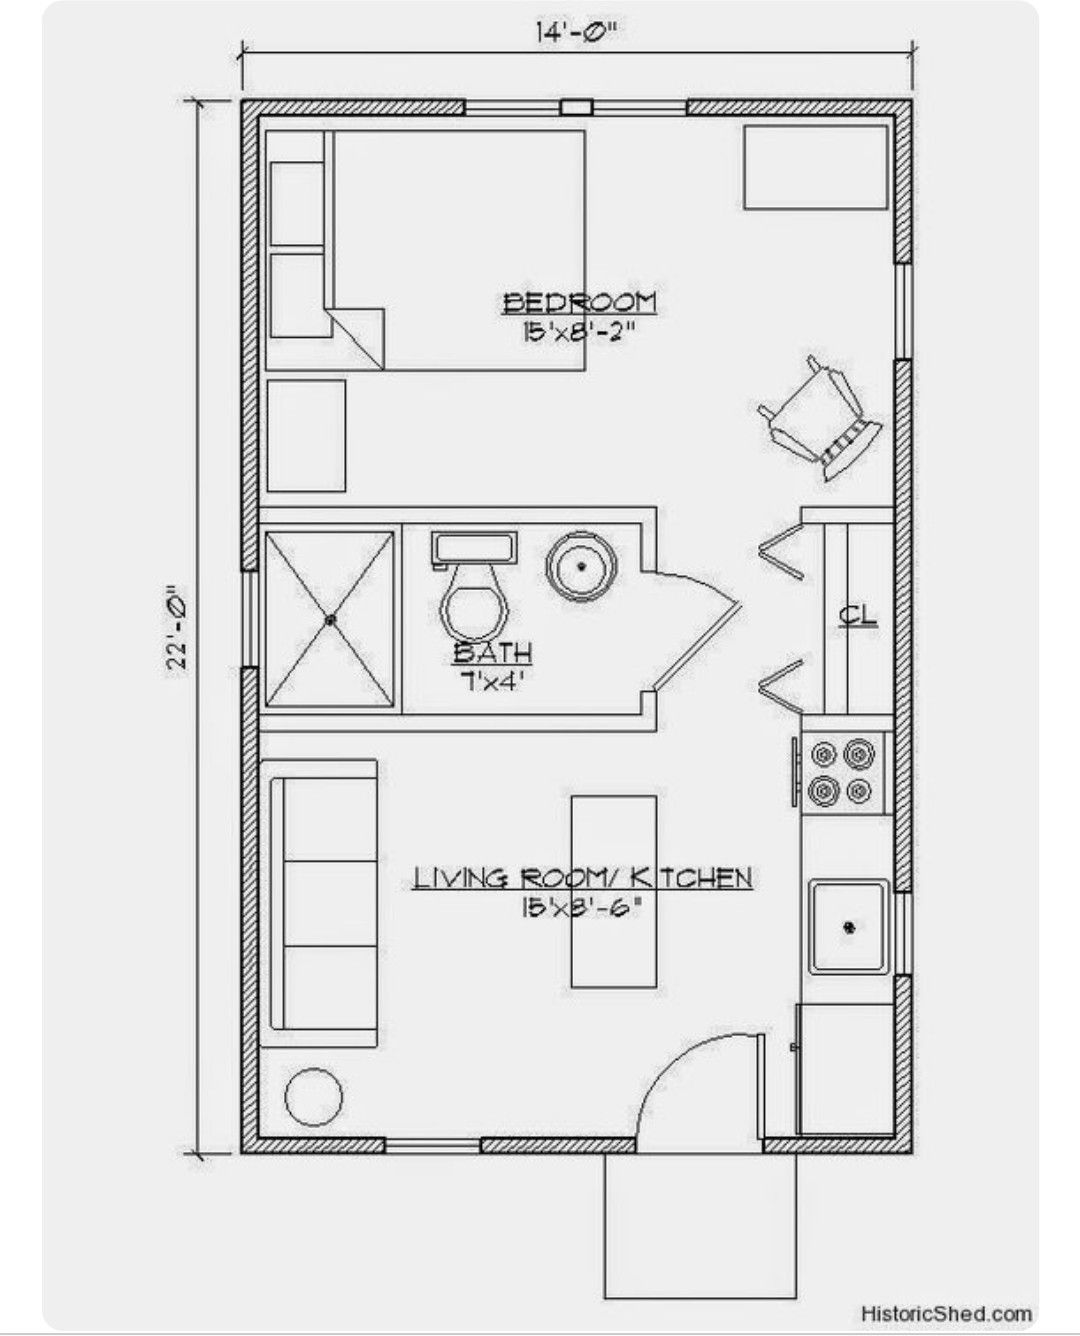 Small house - 14x22 - 1 bedroom | Living Small | Pinterest ...